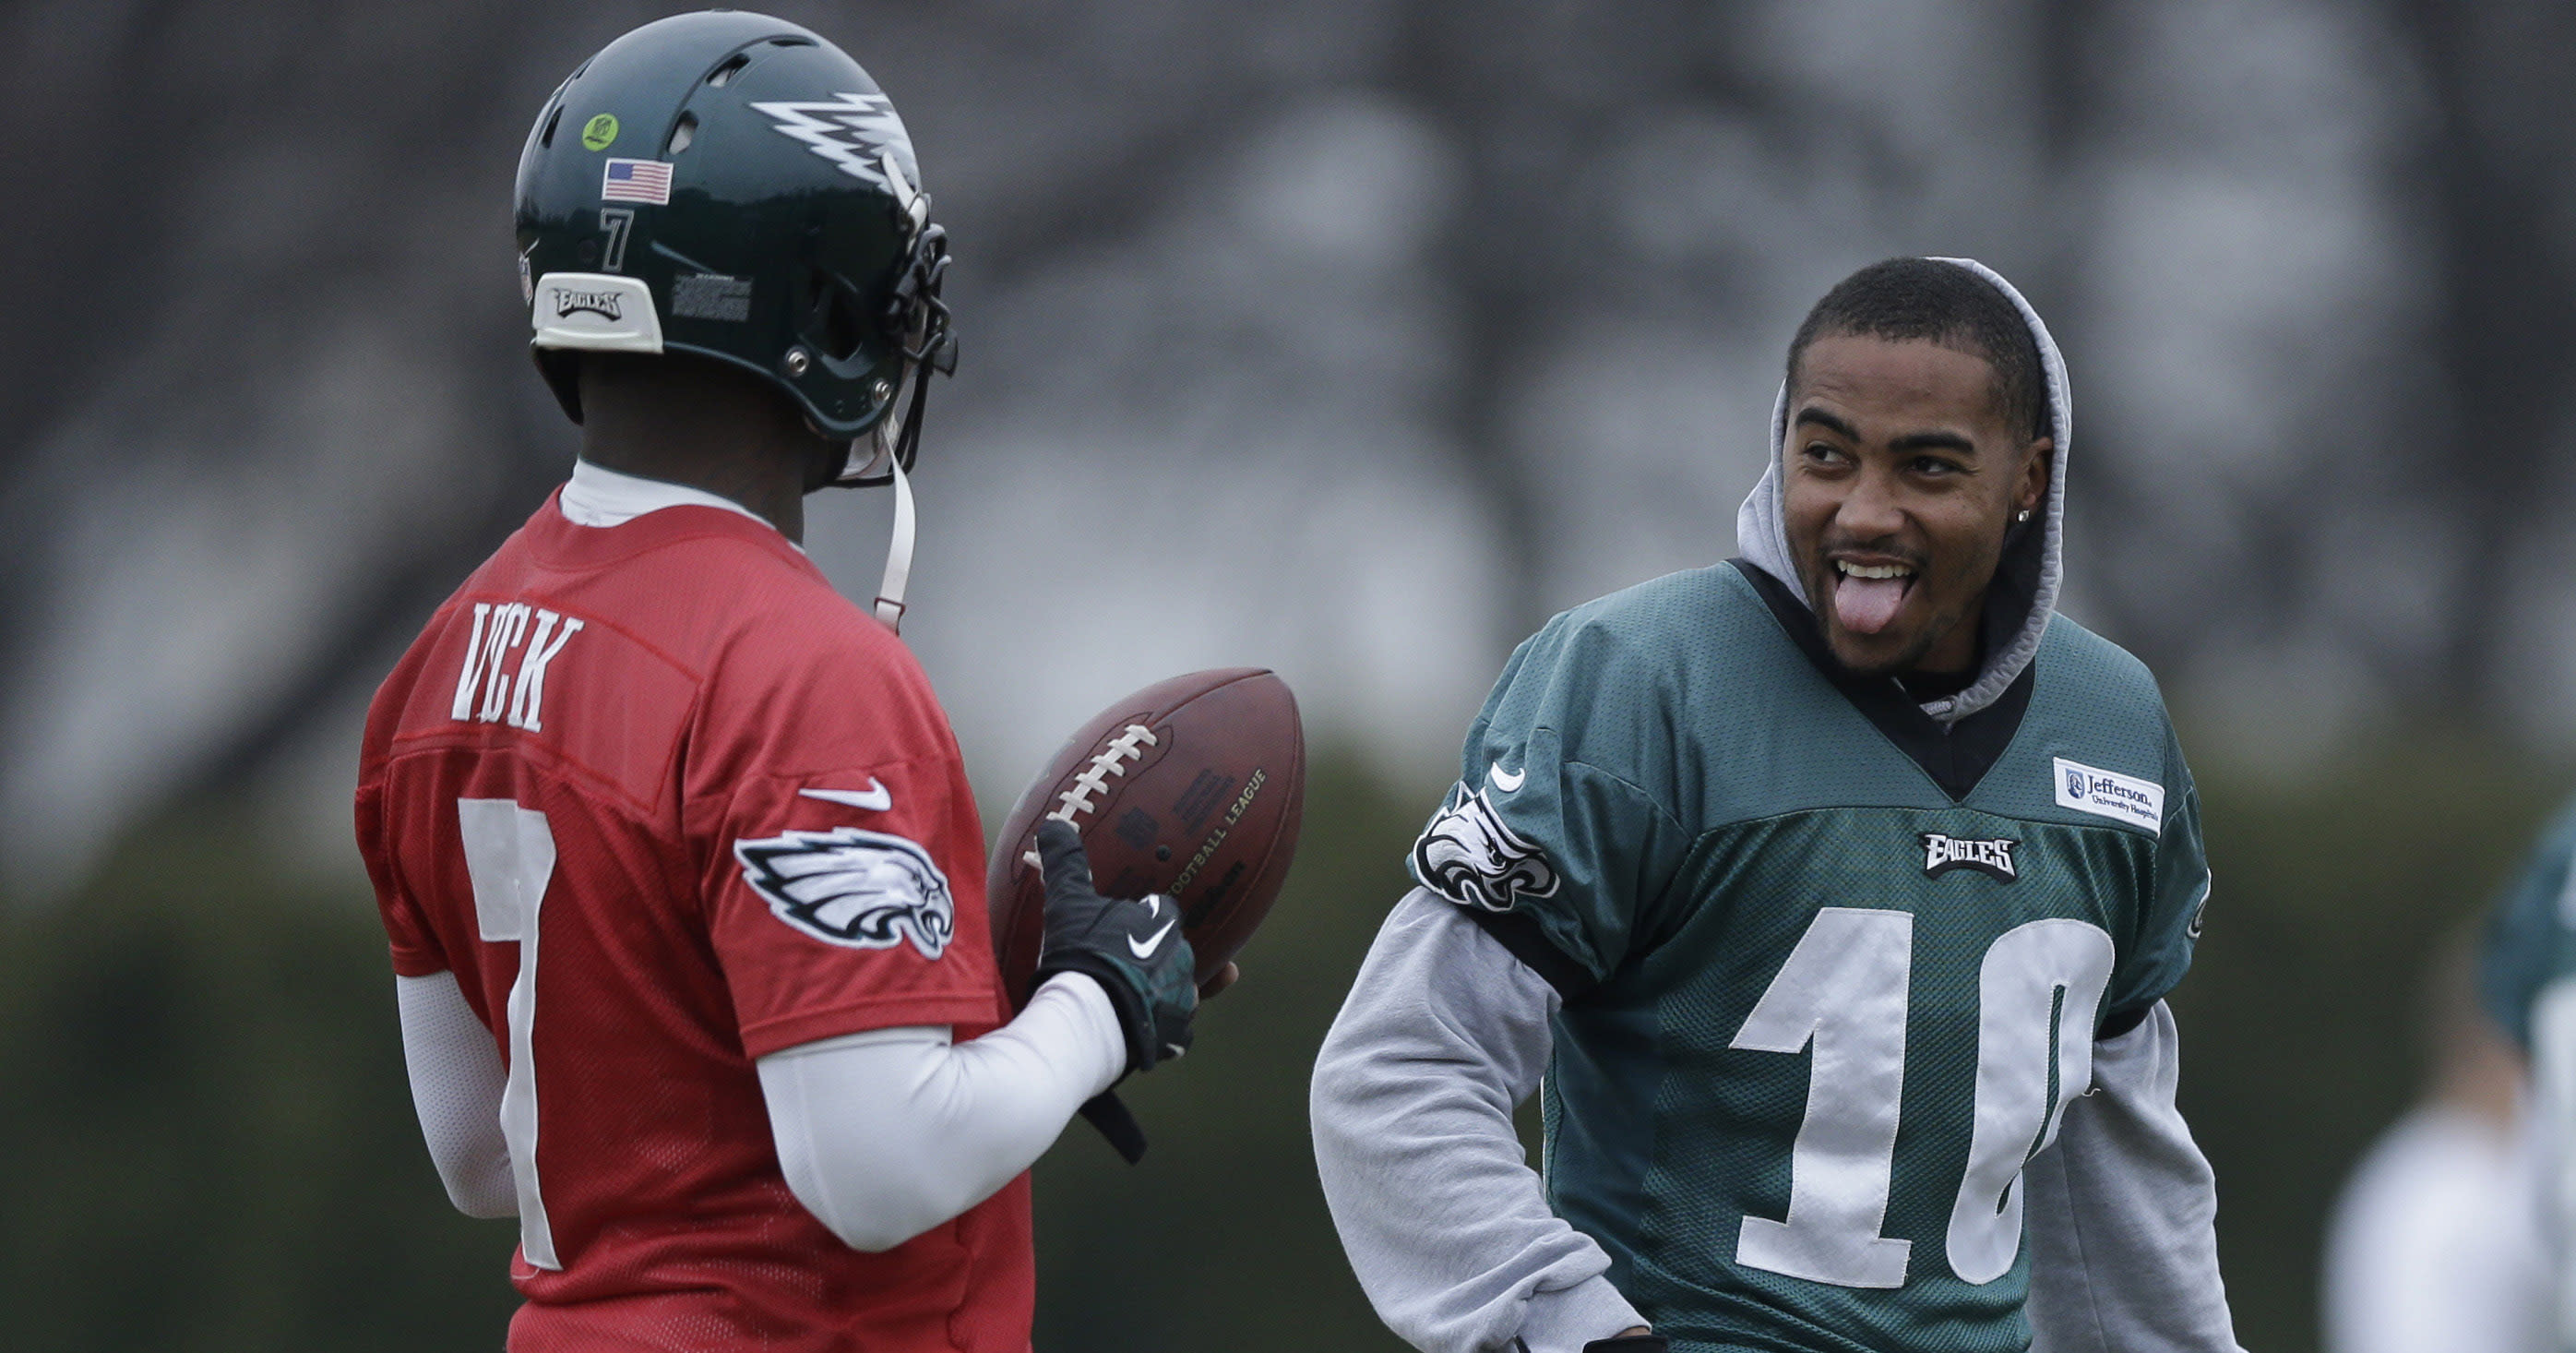 Michael Vick and DeSean Jackson troll Chip Kelly at autograph signing